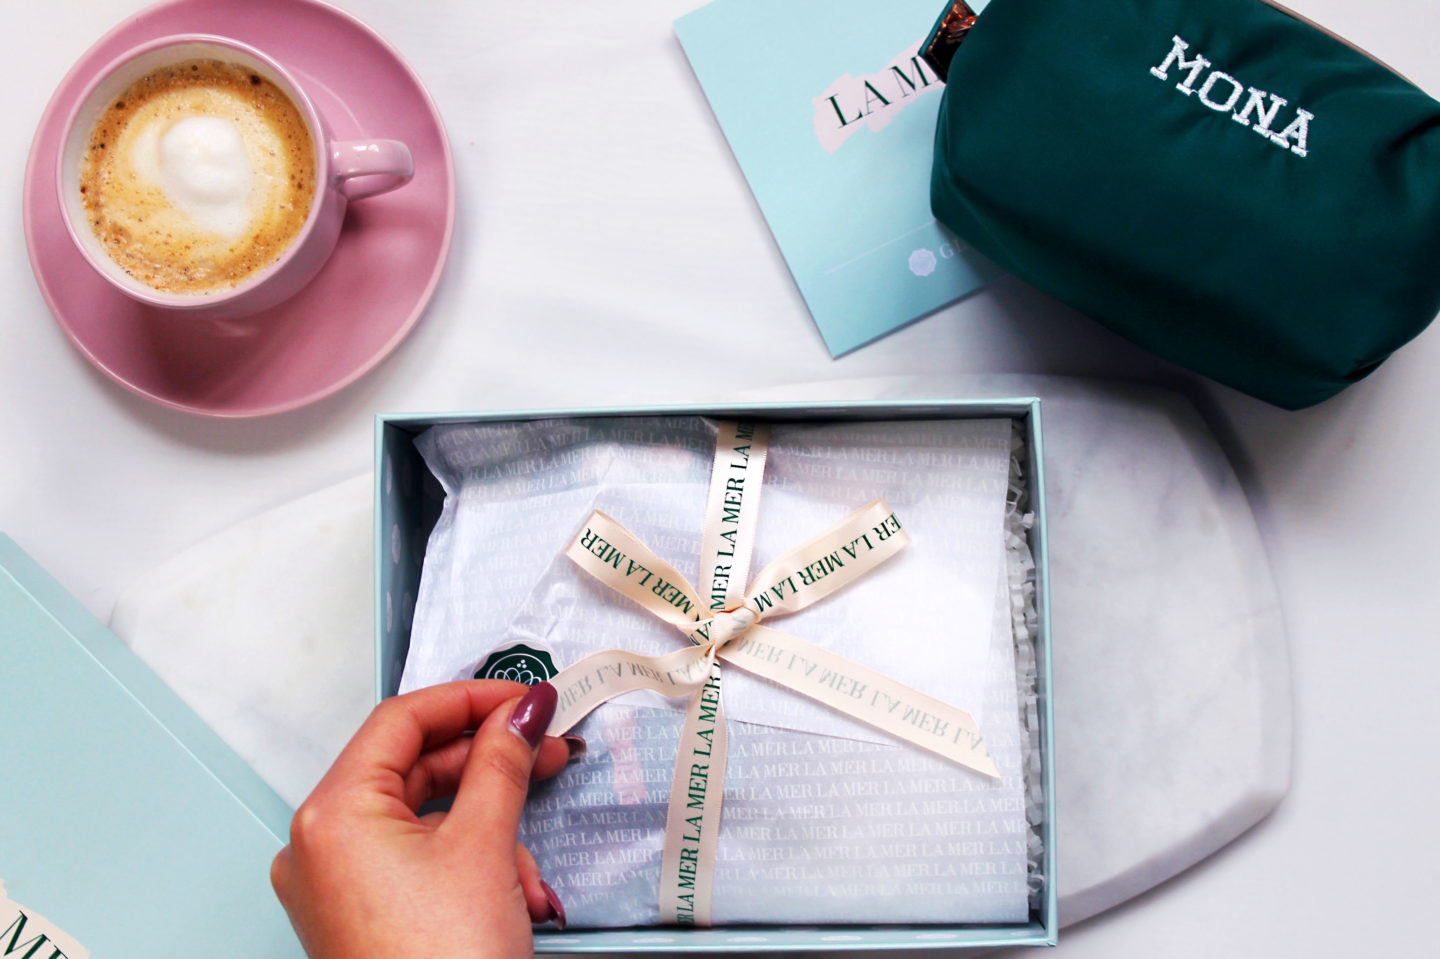 La Mer & Glossybox limited edition box